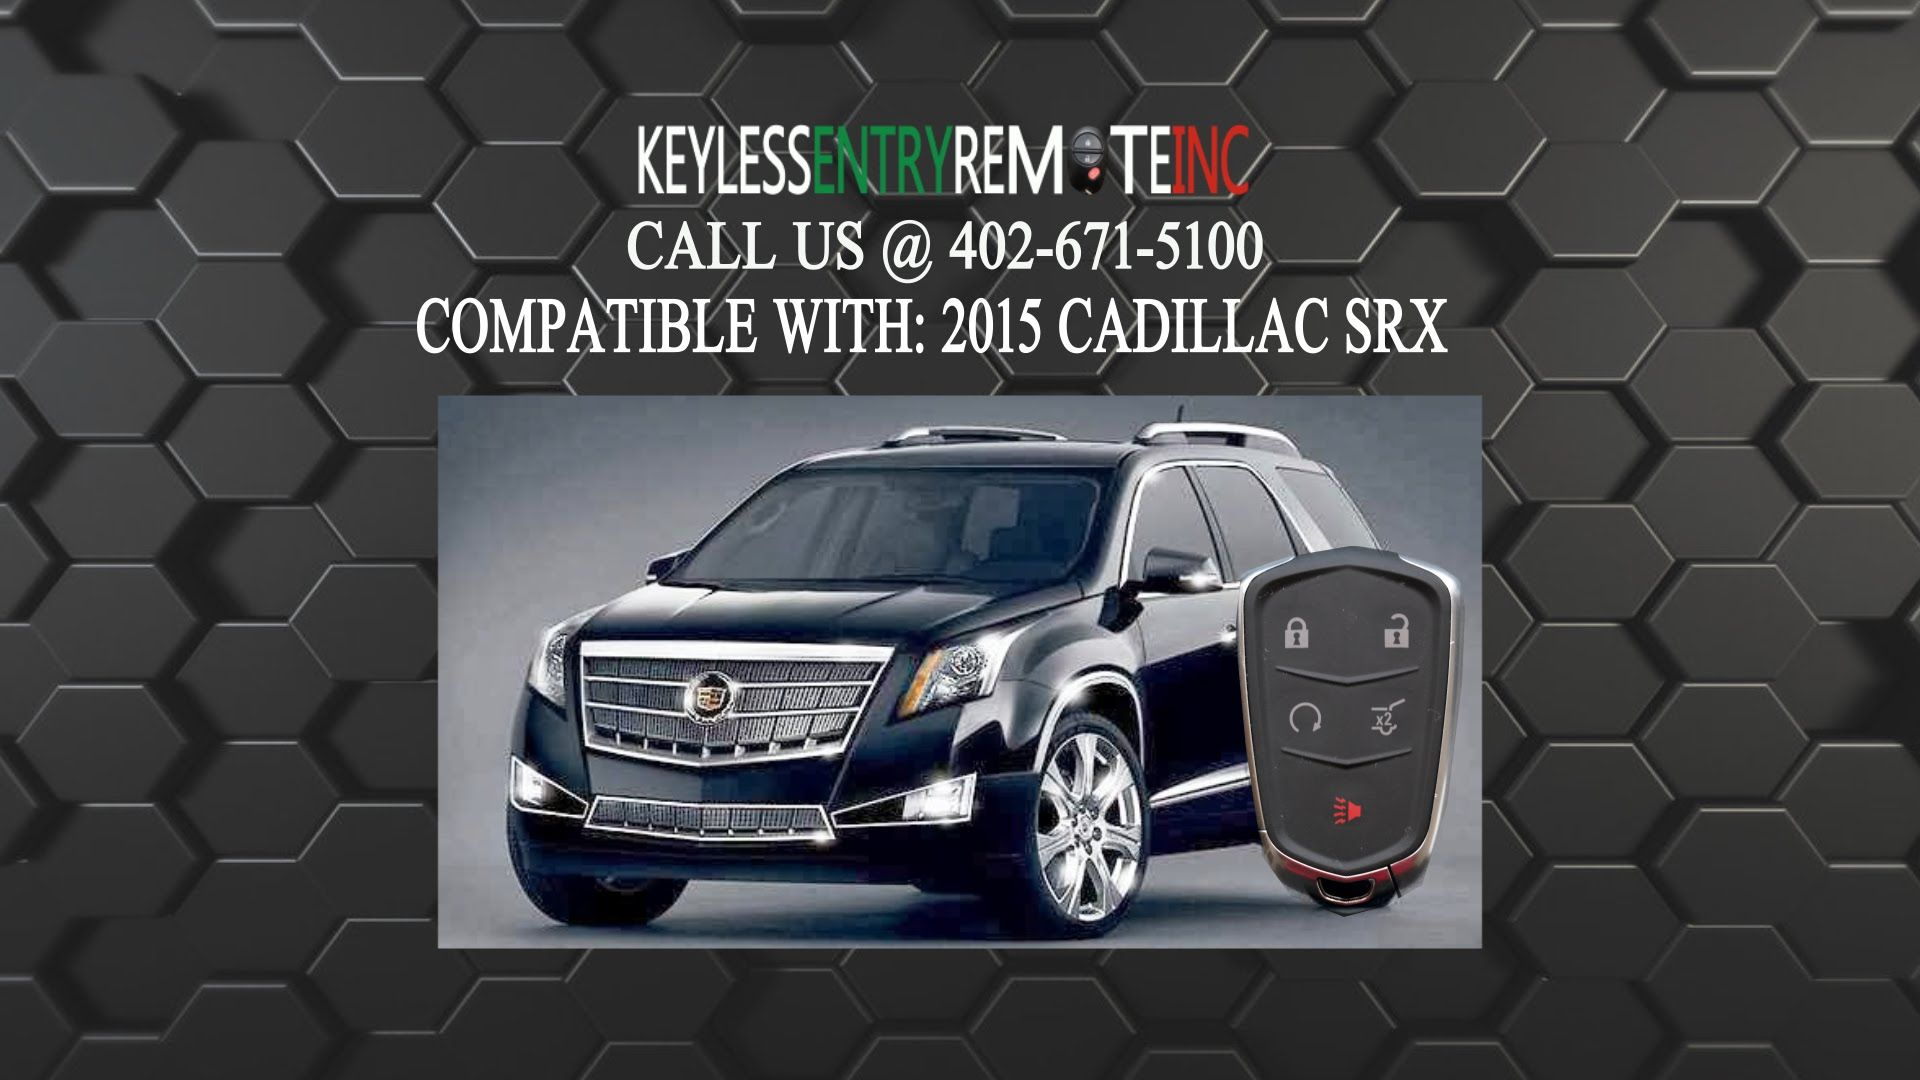 How To Replace A Cadillac SRX Key Fob Battery 2015 - 2017